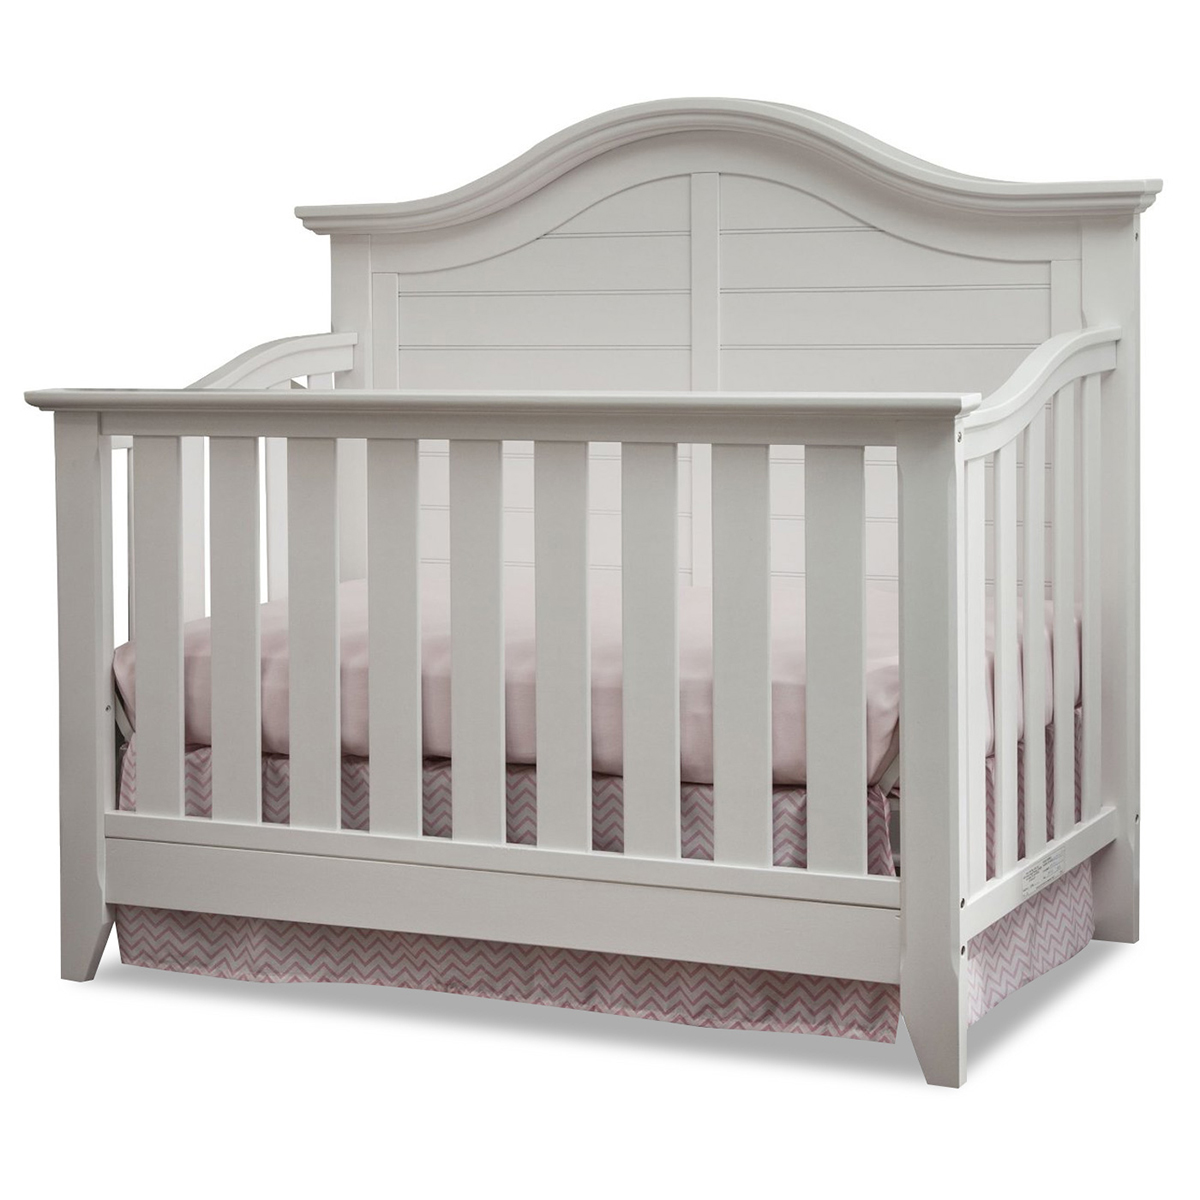 white cribs thomasville southern dunes lifestyle crib in white free shipping LTRCENA